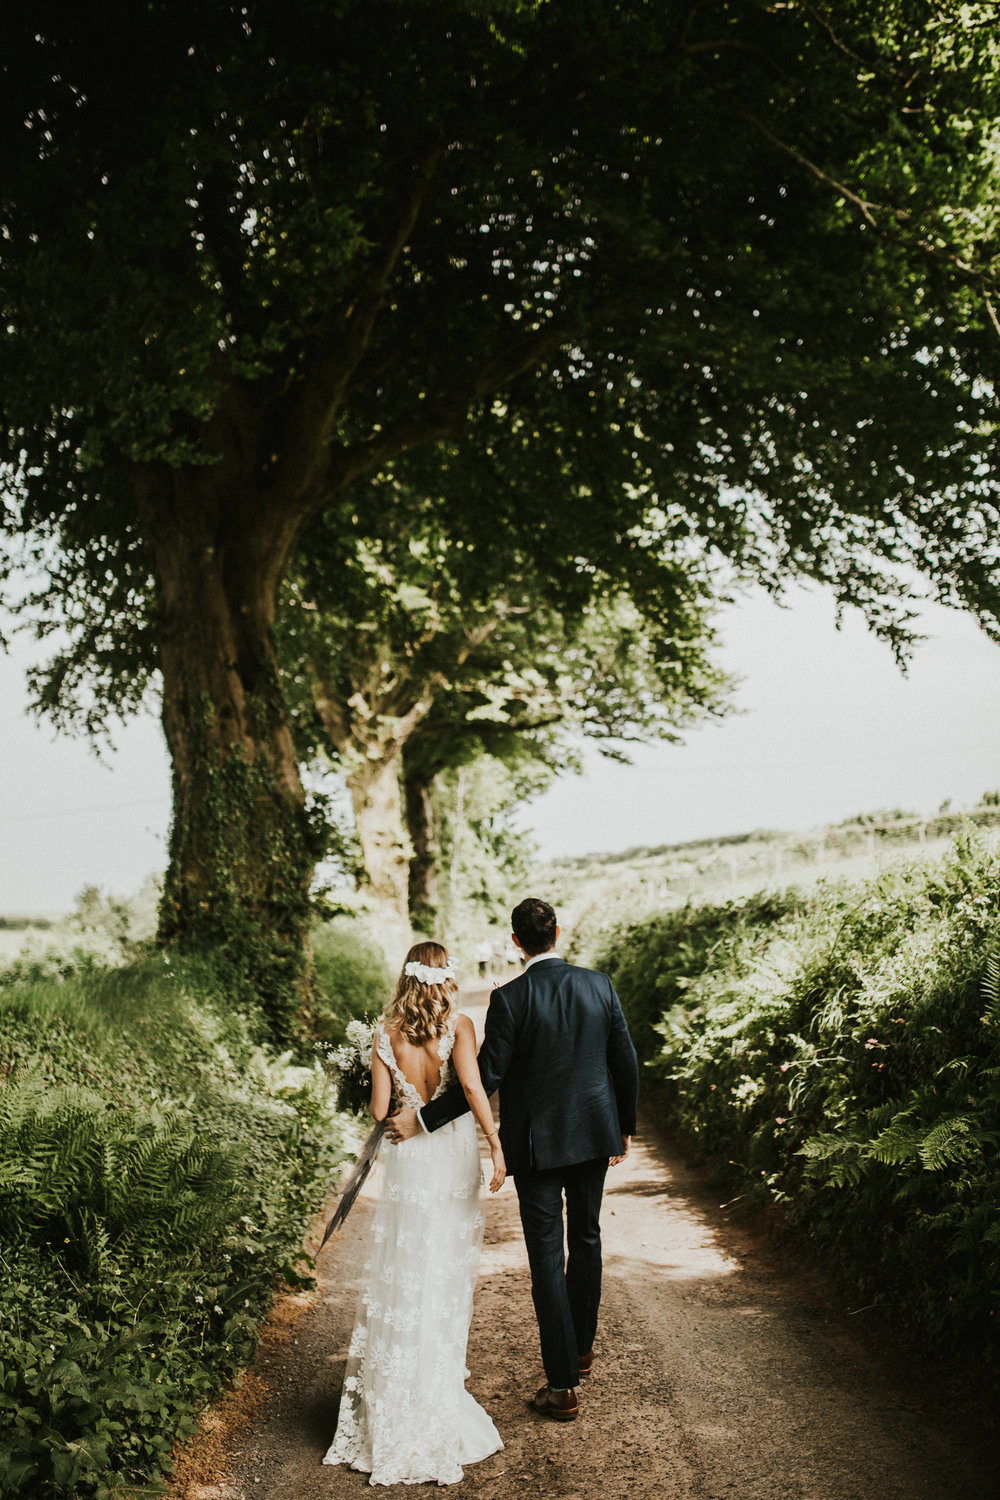 Rach-Stefan-Wedding-Devon-South-Slapton-Sands-Boho-Photography-Darina-Stoda-508.jpg